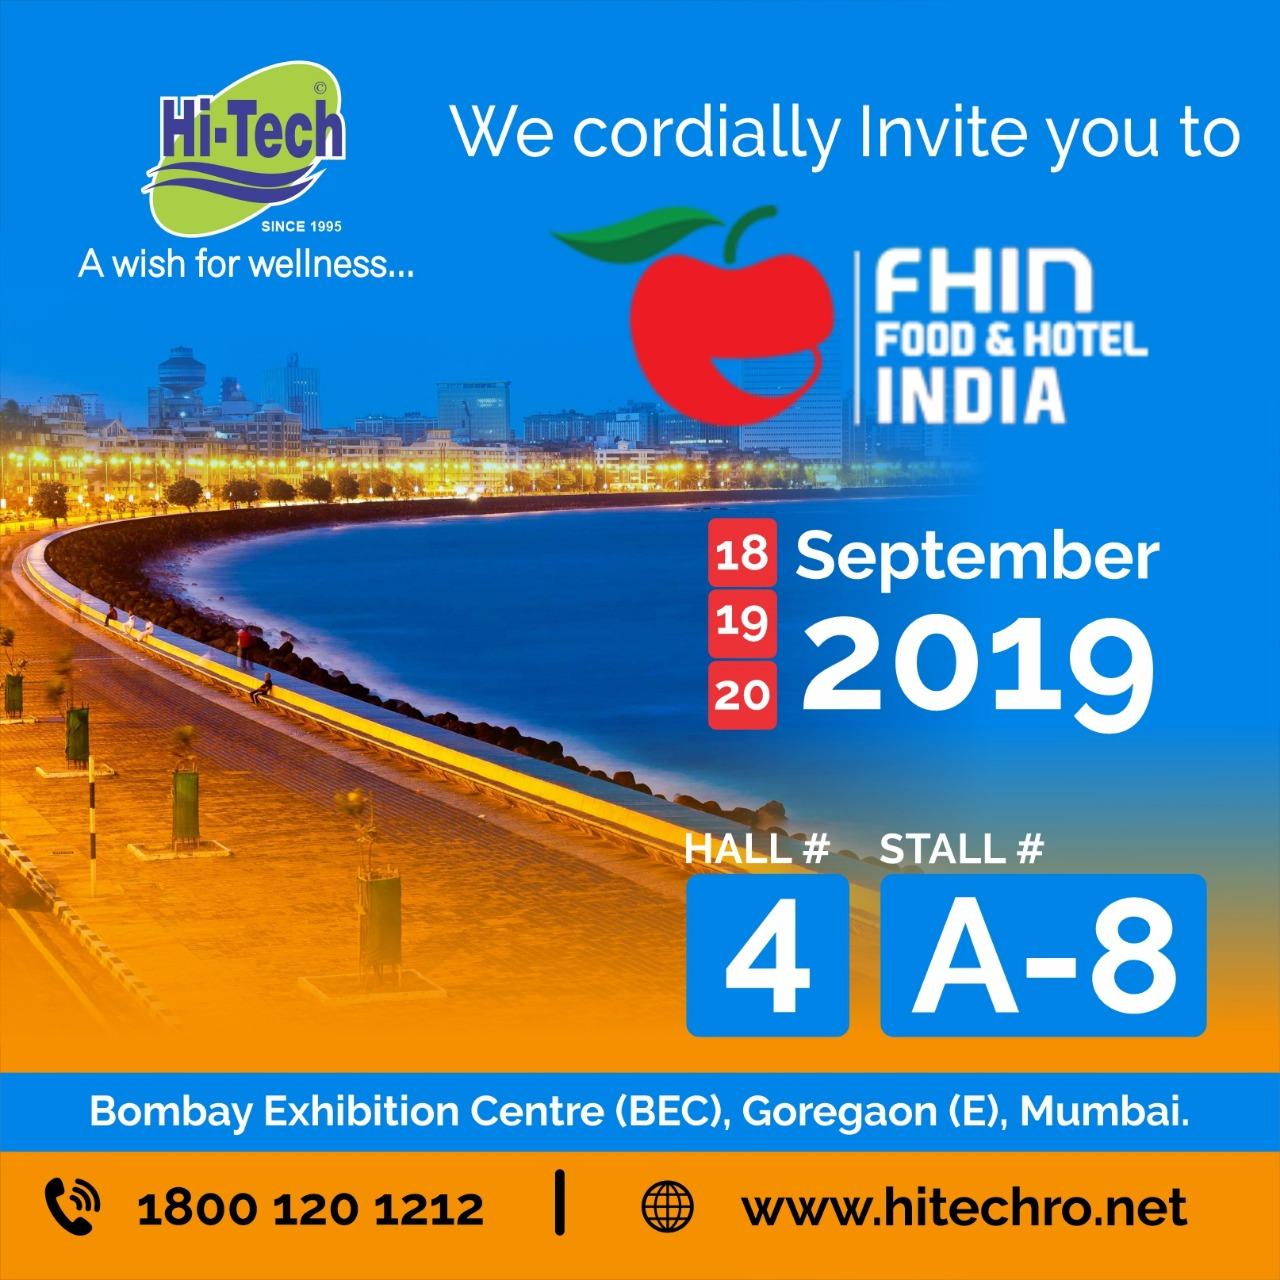 Food & Hotel India Expo 2019